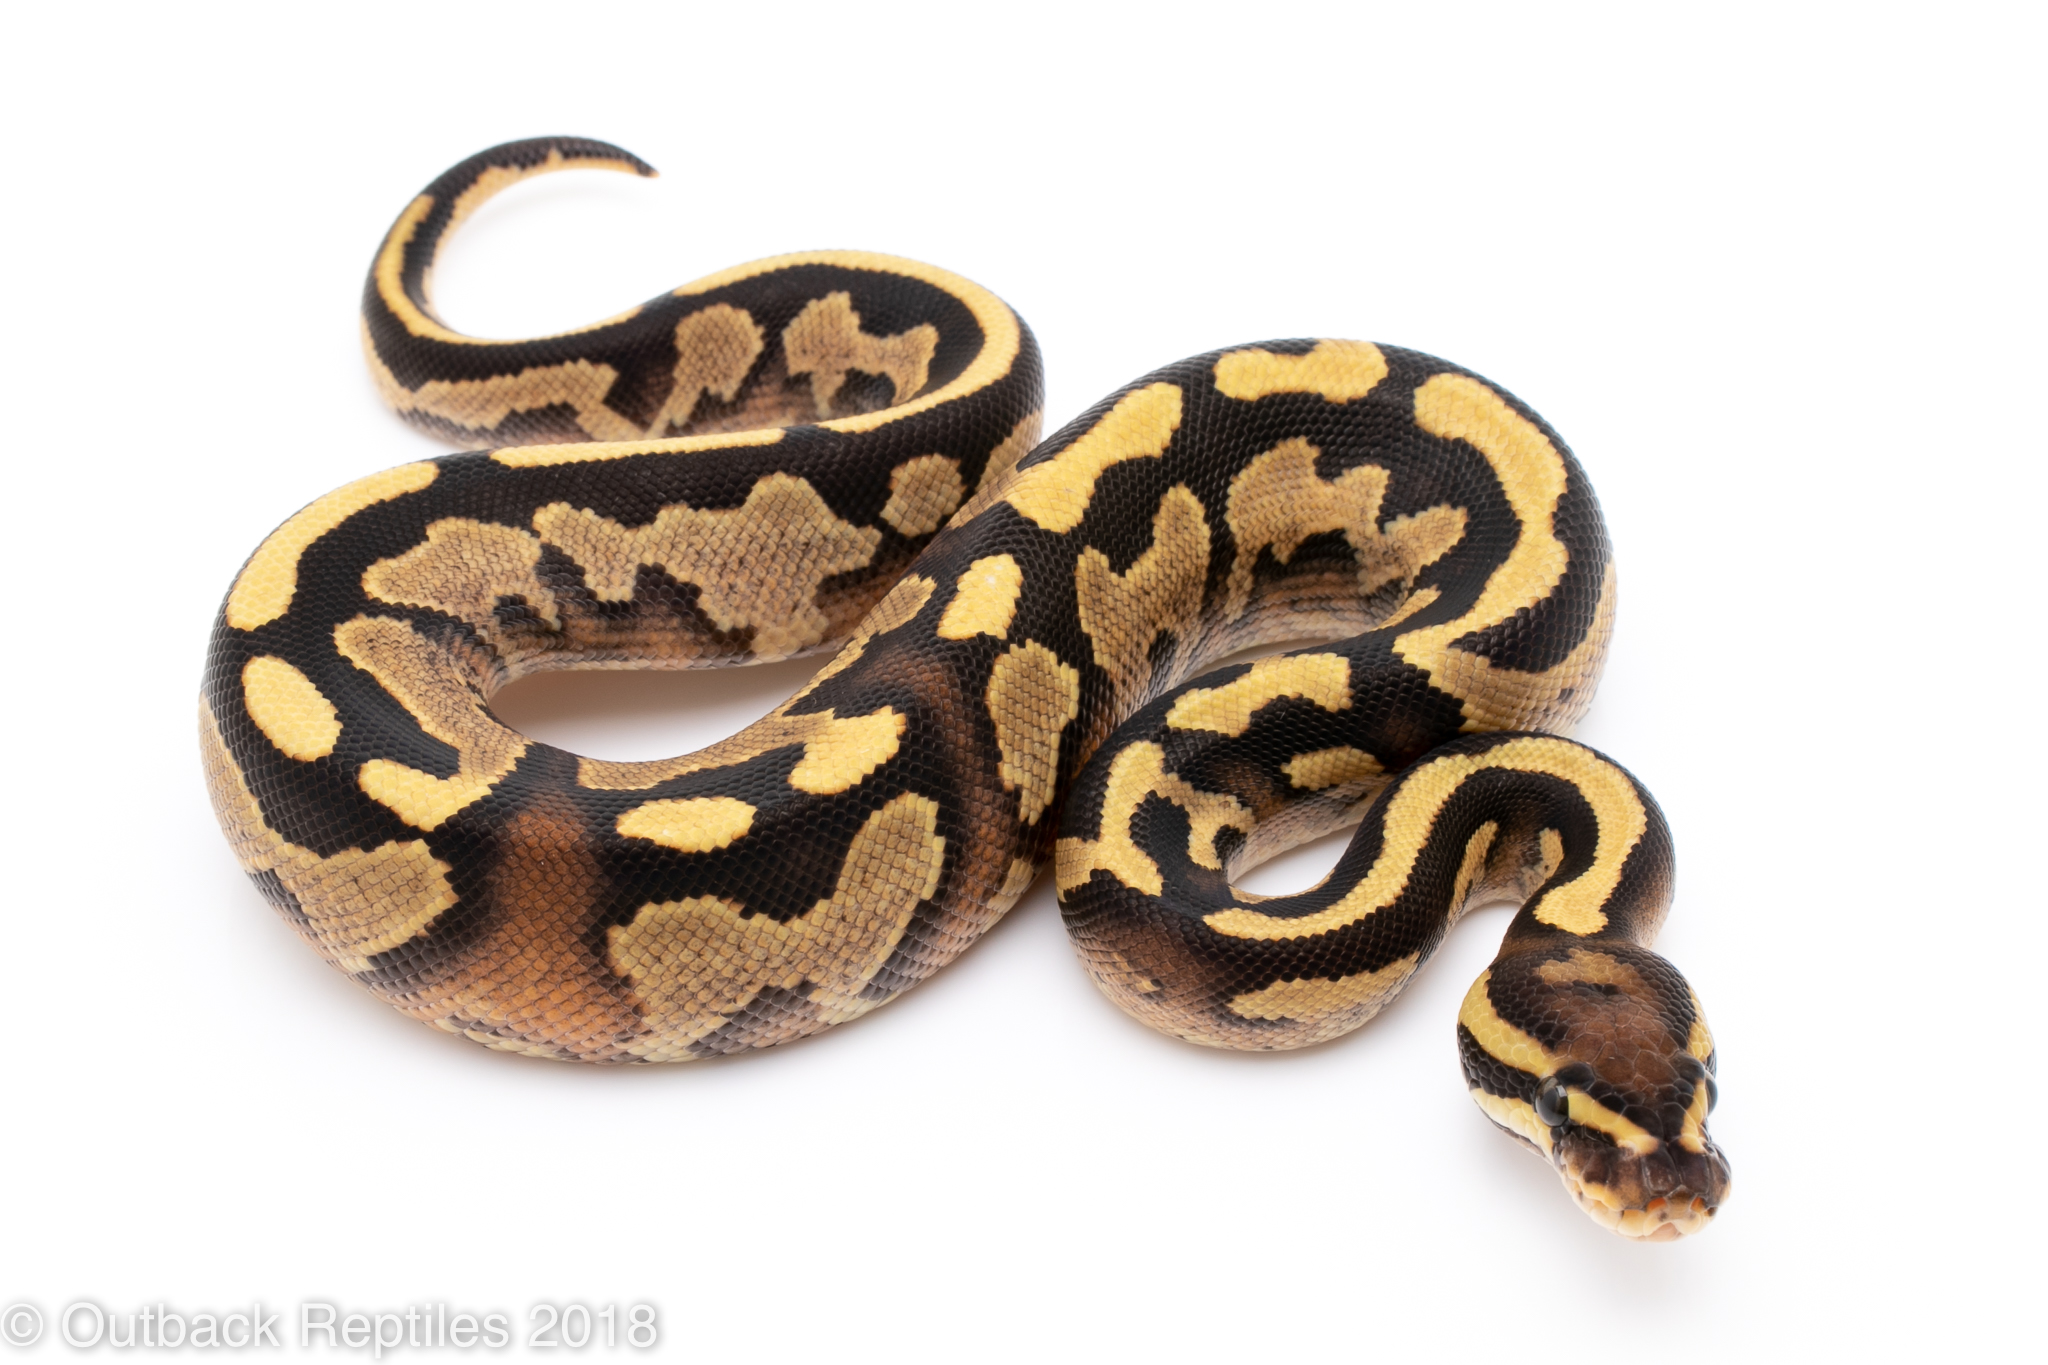 fire yellowbelly ball python for sale